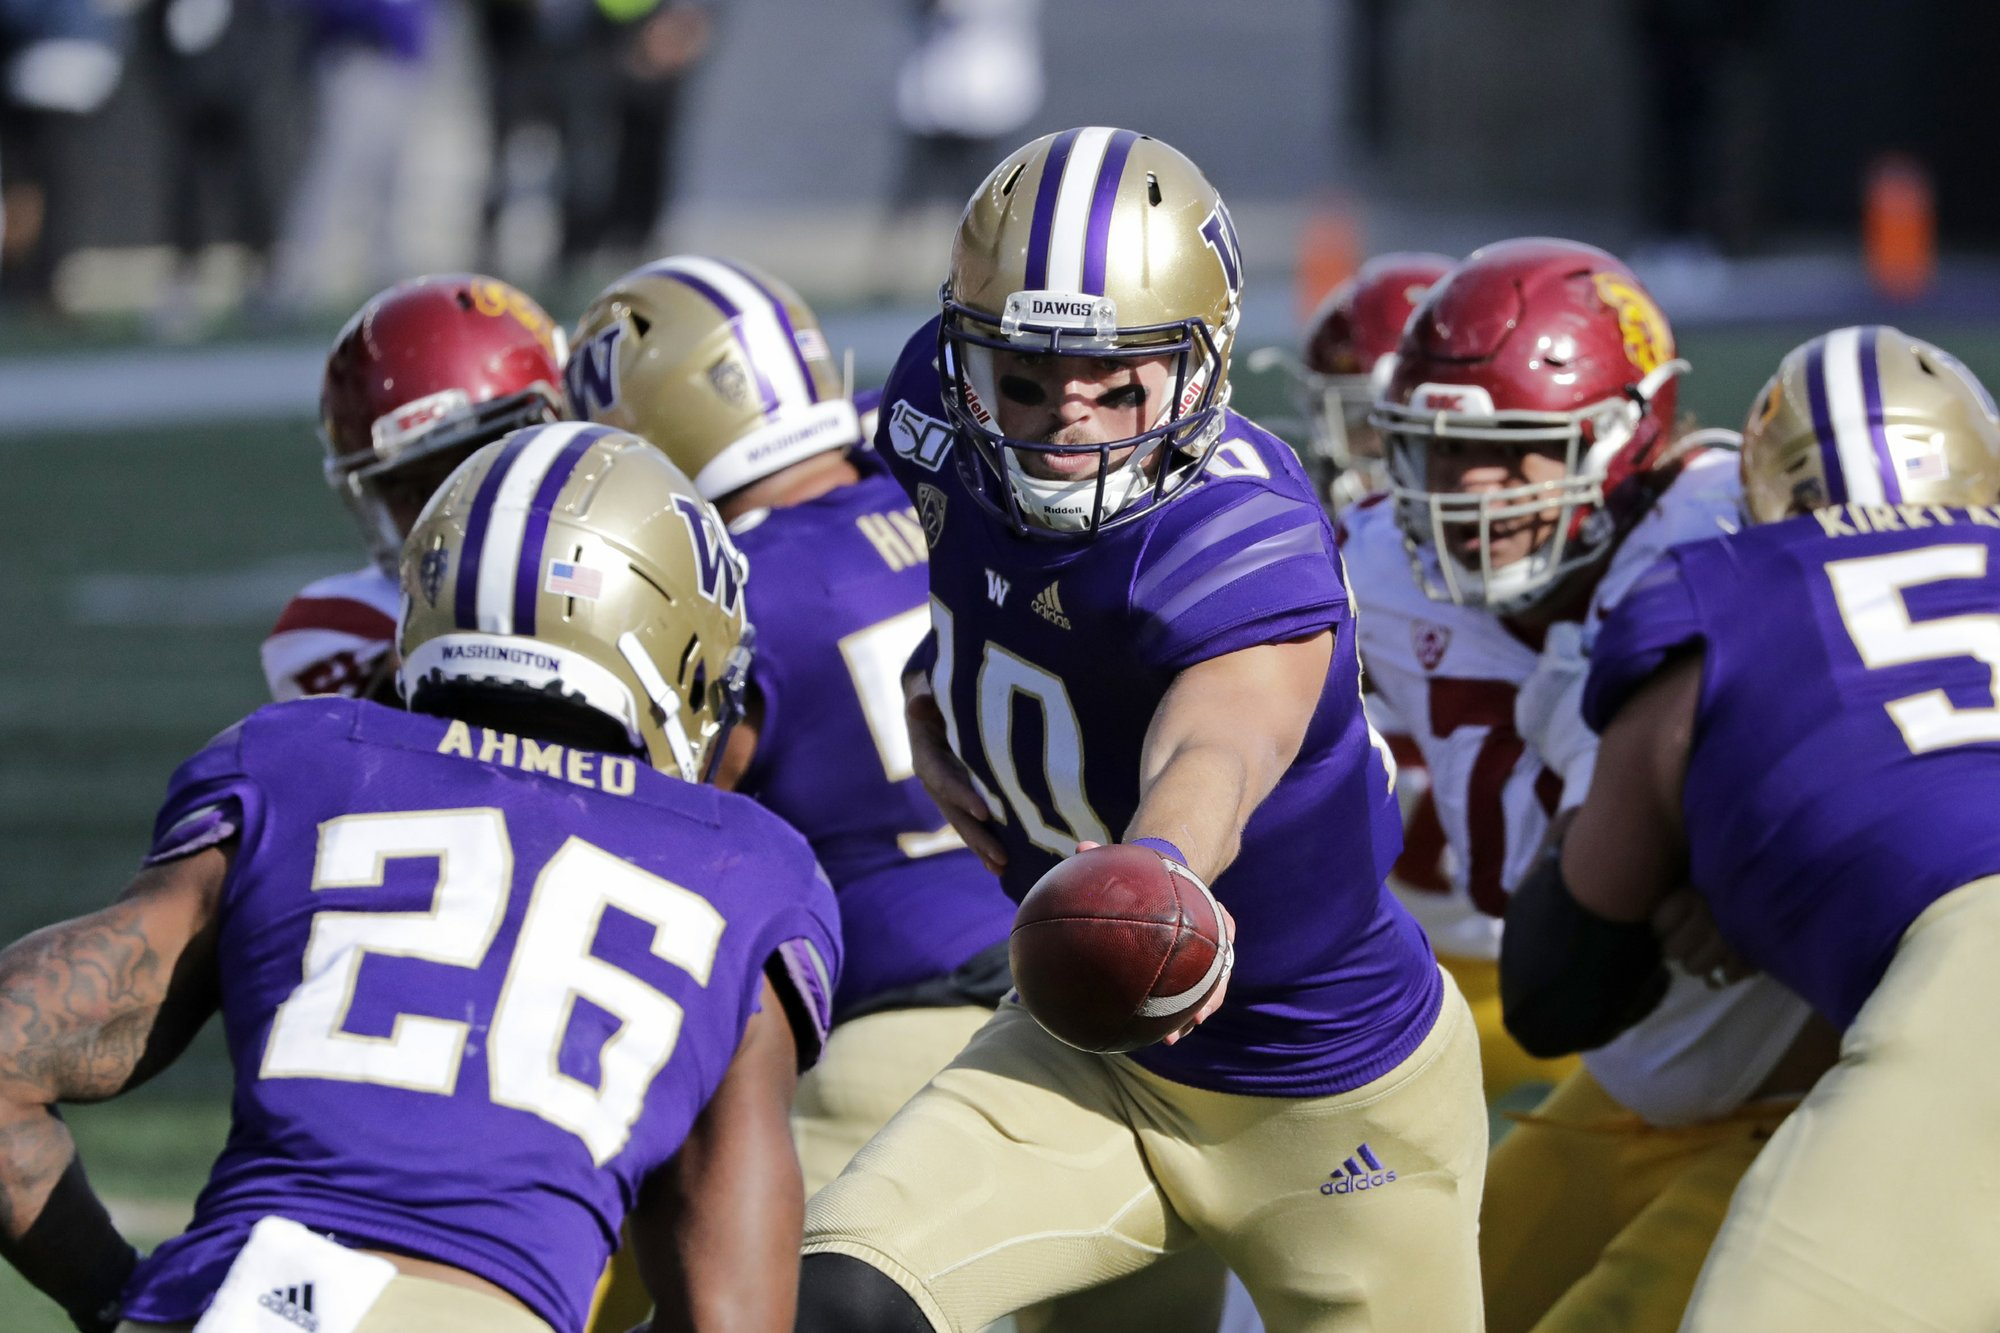 No. 15 Washington looks to end drought in Stanford